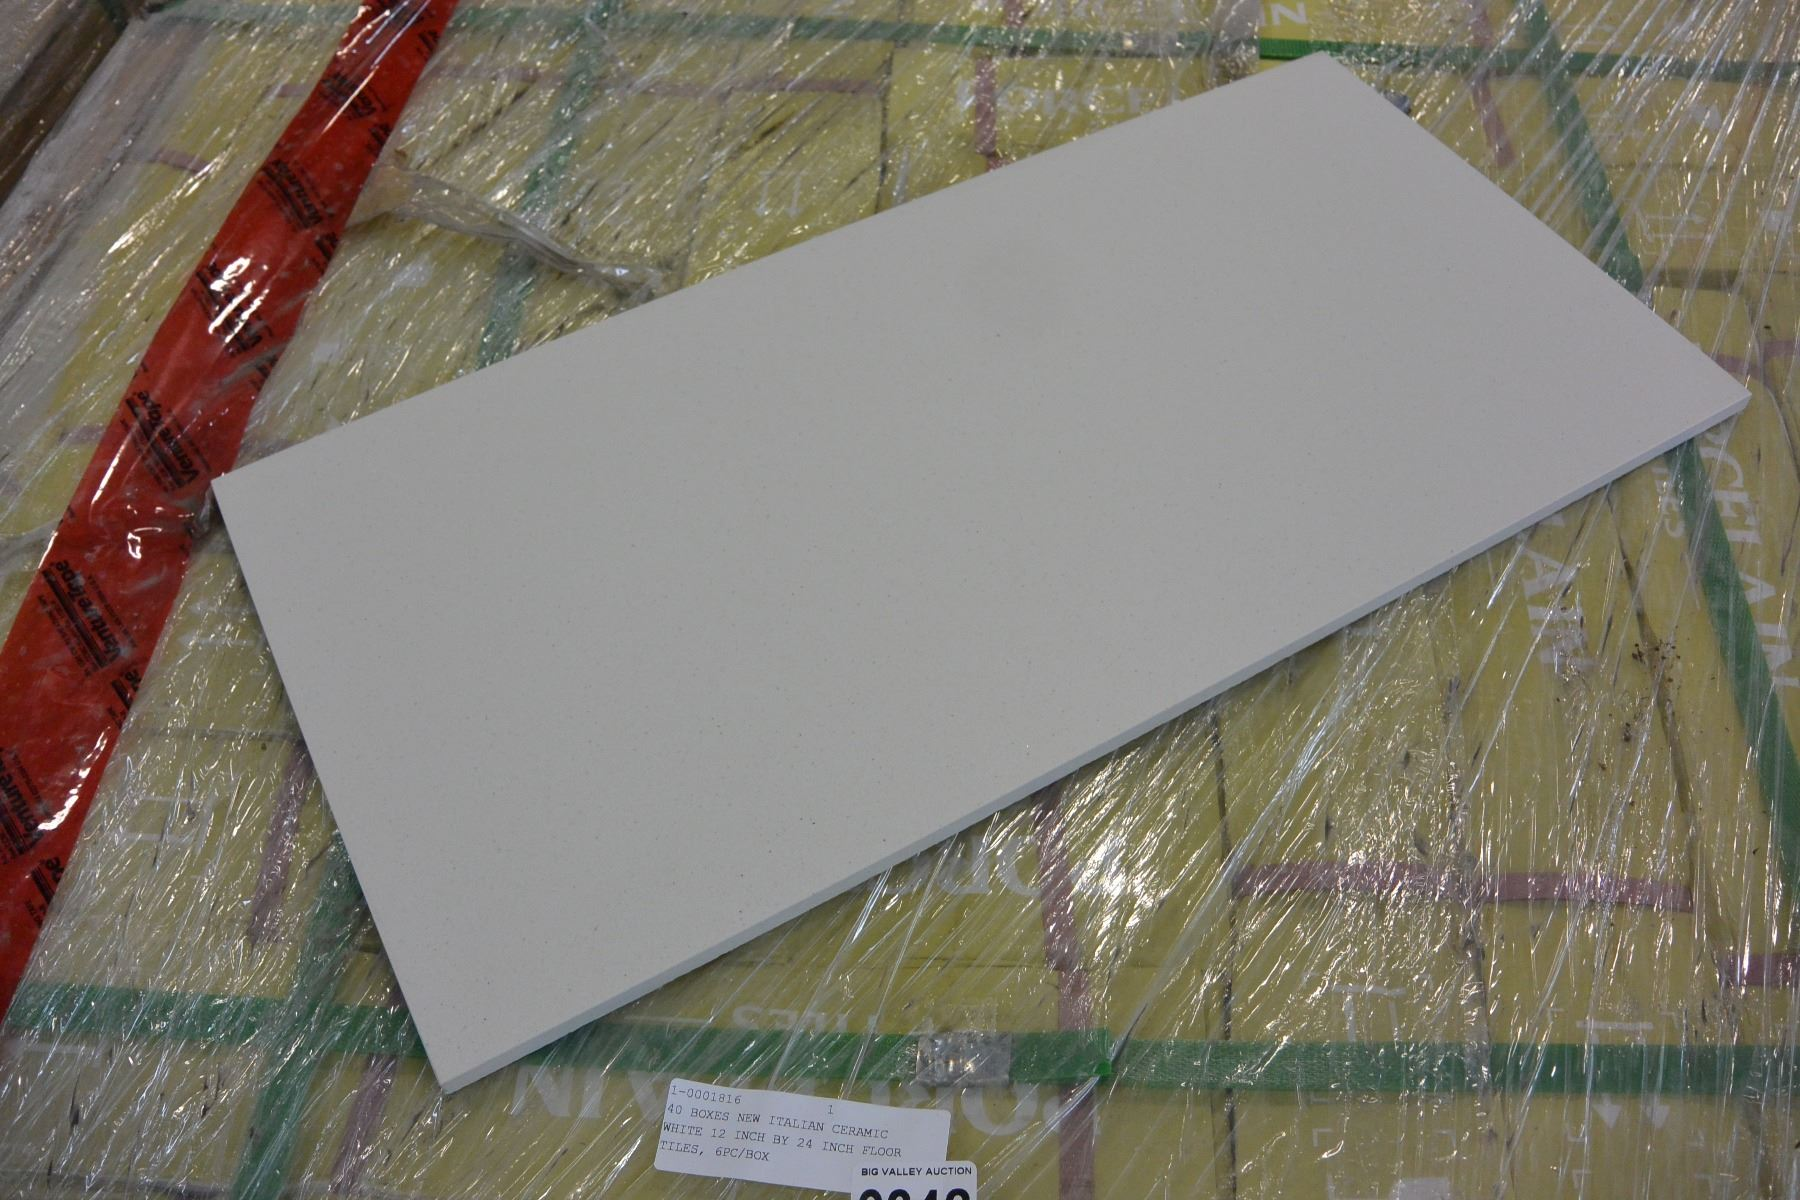 BOXES NEW ITALIAN CERAMIC WHITE INCH BY INCH FLOOR TILES - 12 inch ceramic floor tiles